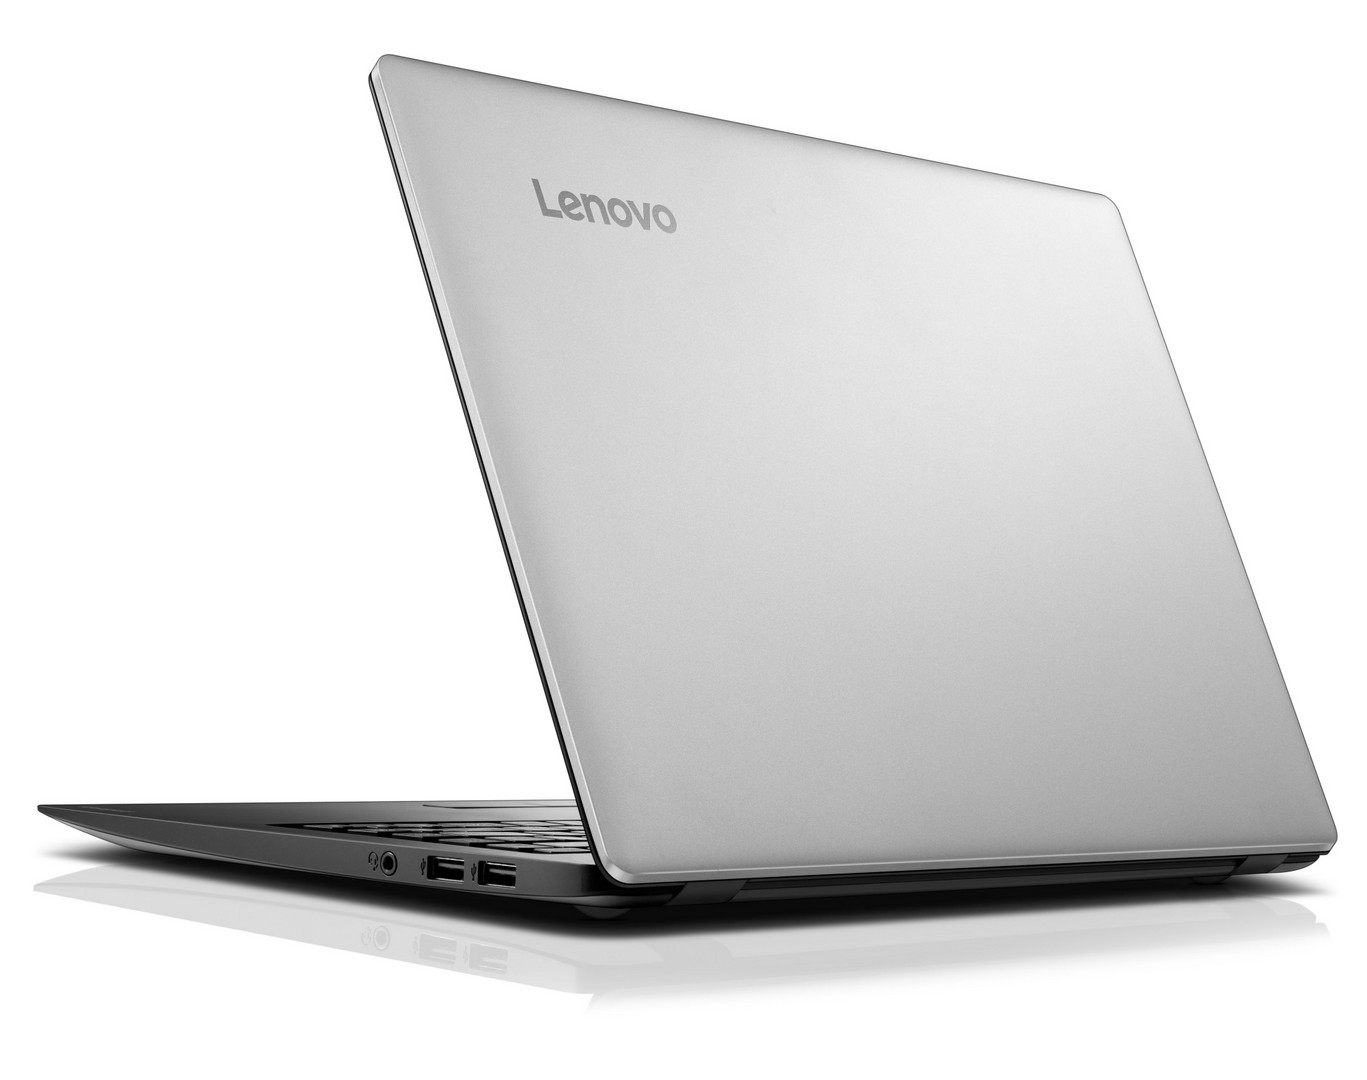 lenovo ideapad 100s 14ibr n3060 hd 400 laptop review reviews. Black Bedroom Furniture Sets. Home Design Ideas